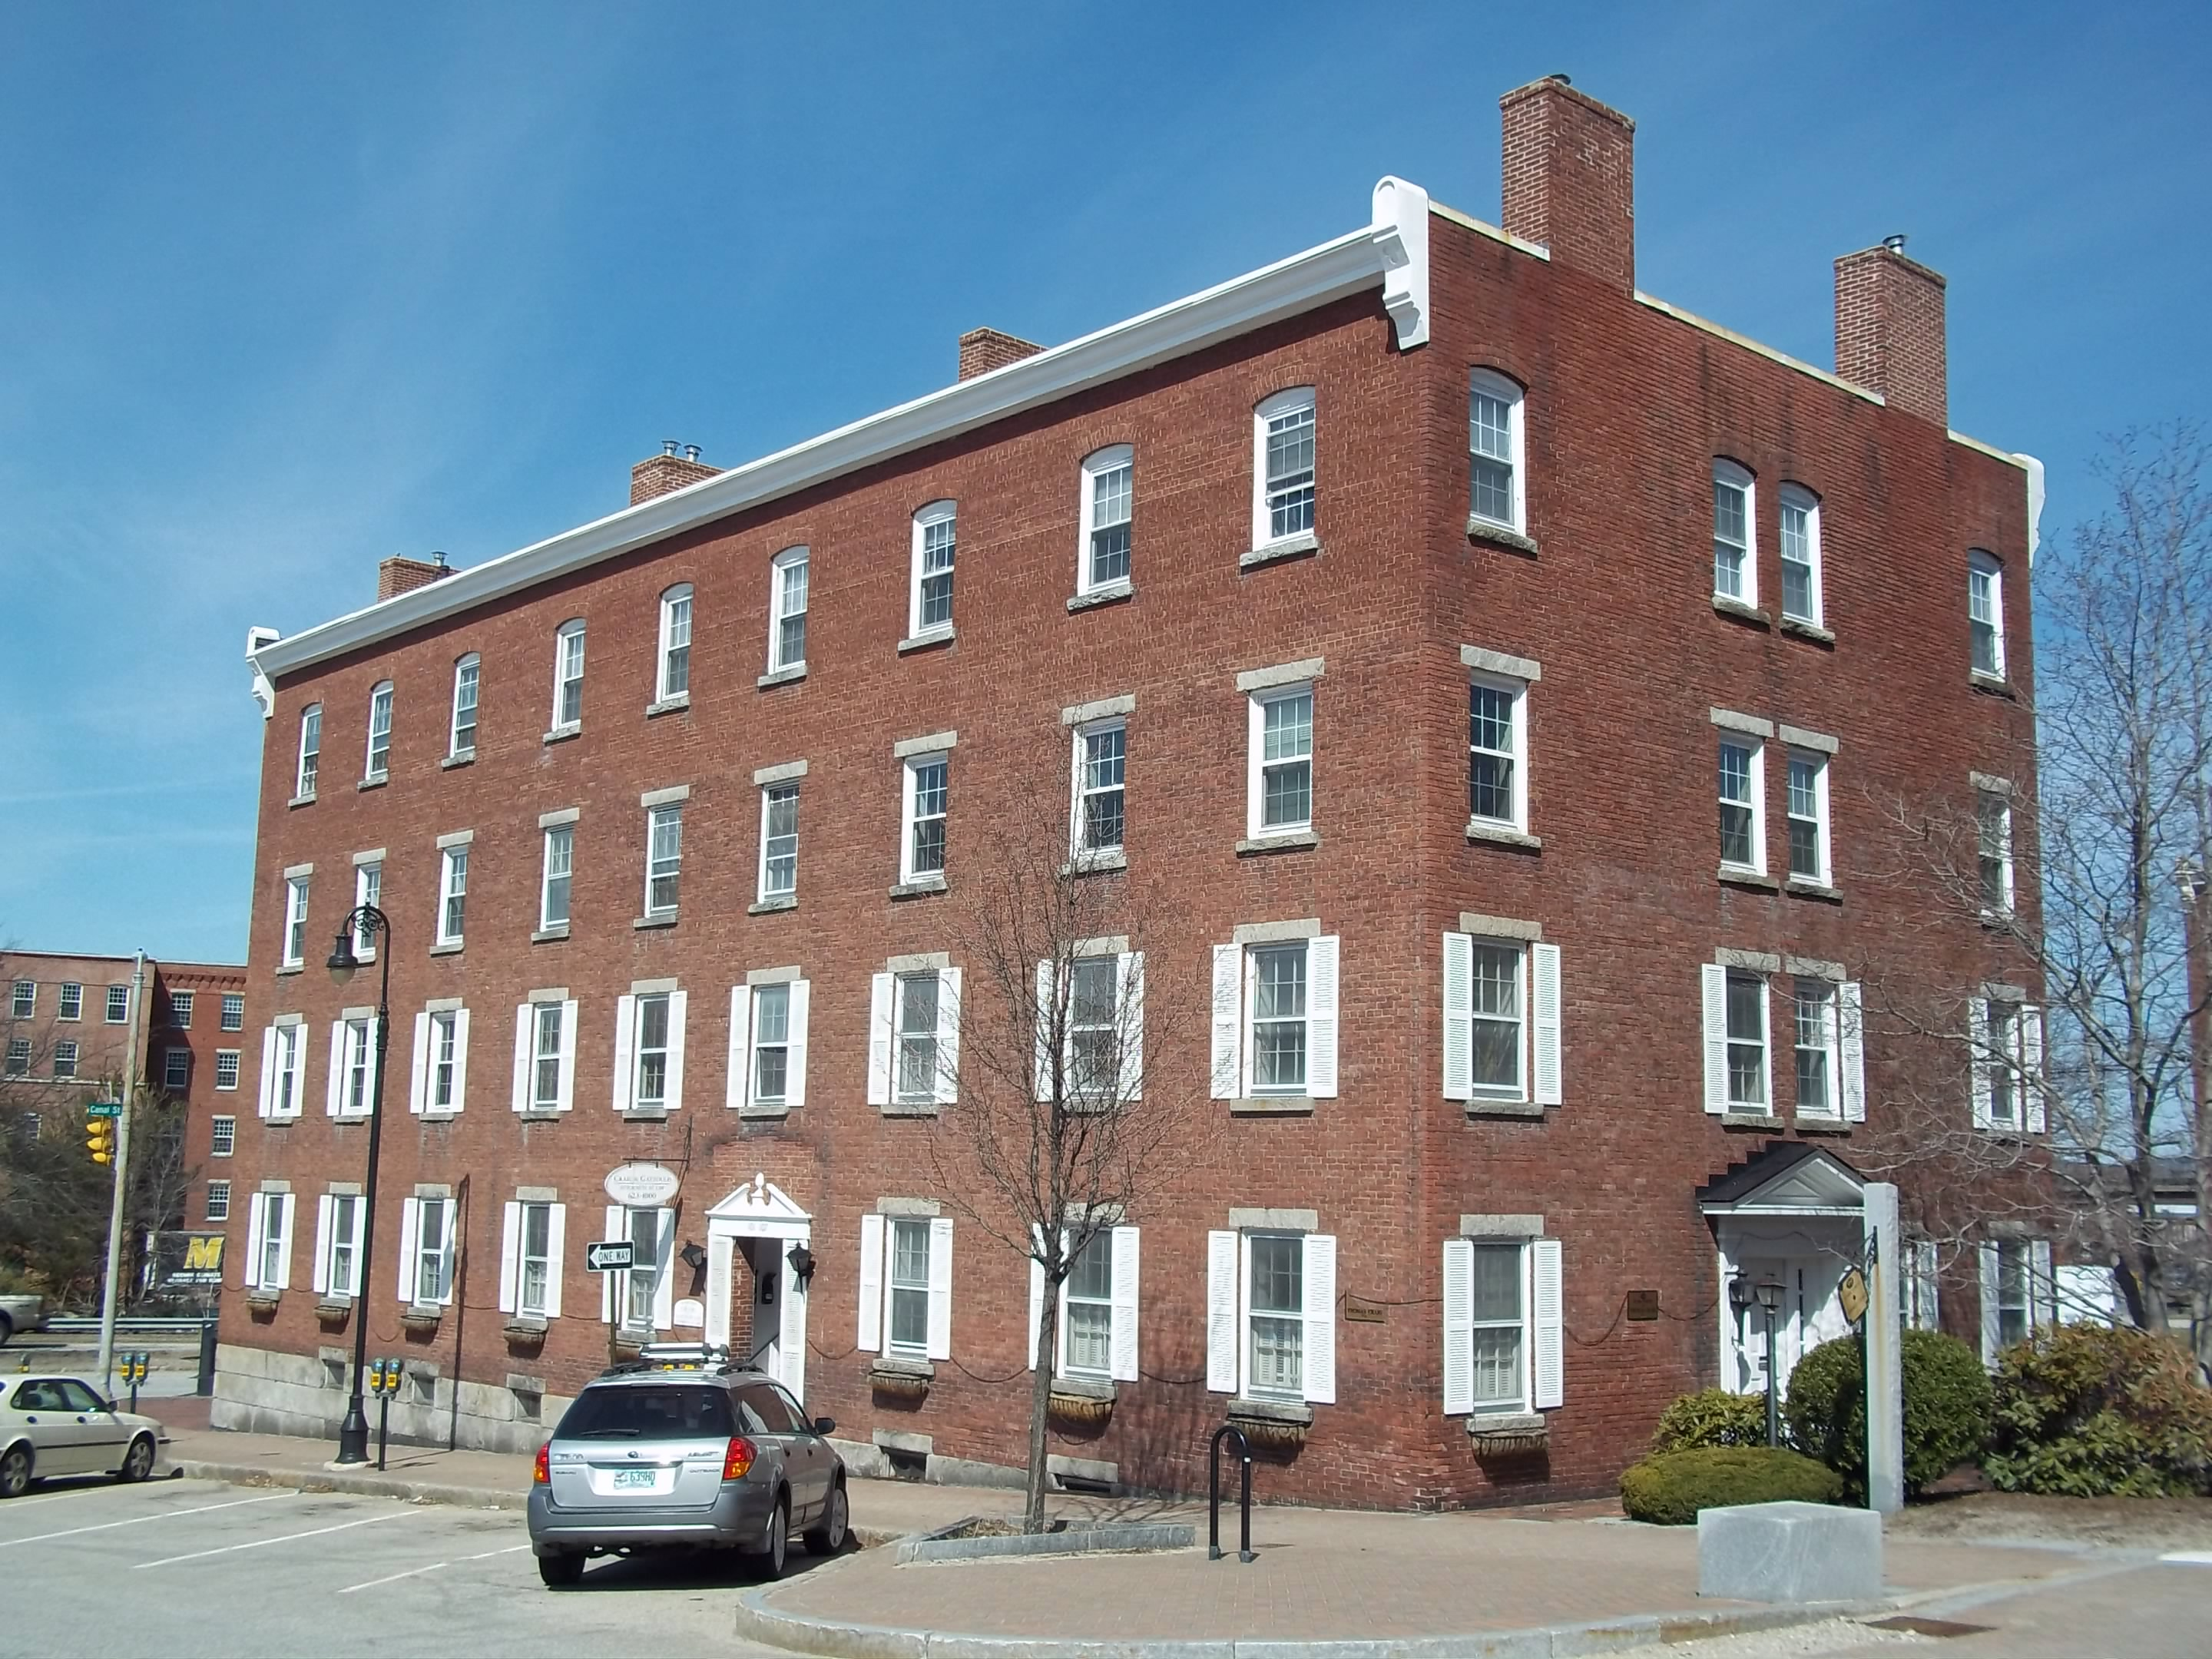 101 Stark Street, Manchester, NH - For Lease